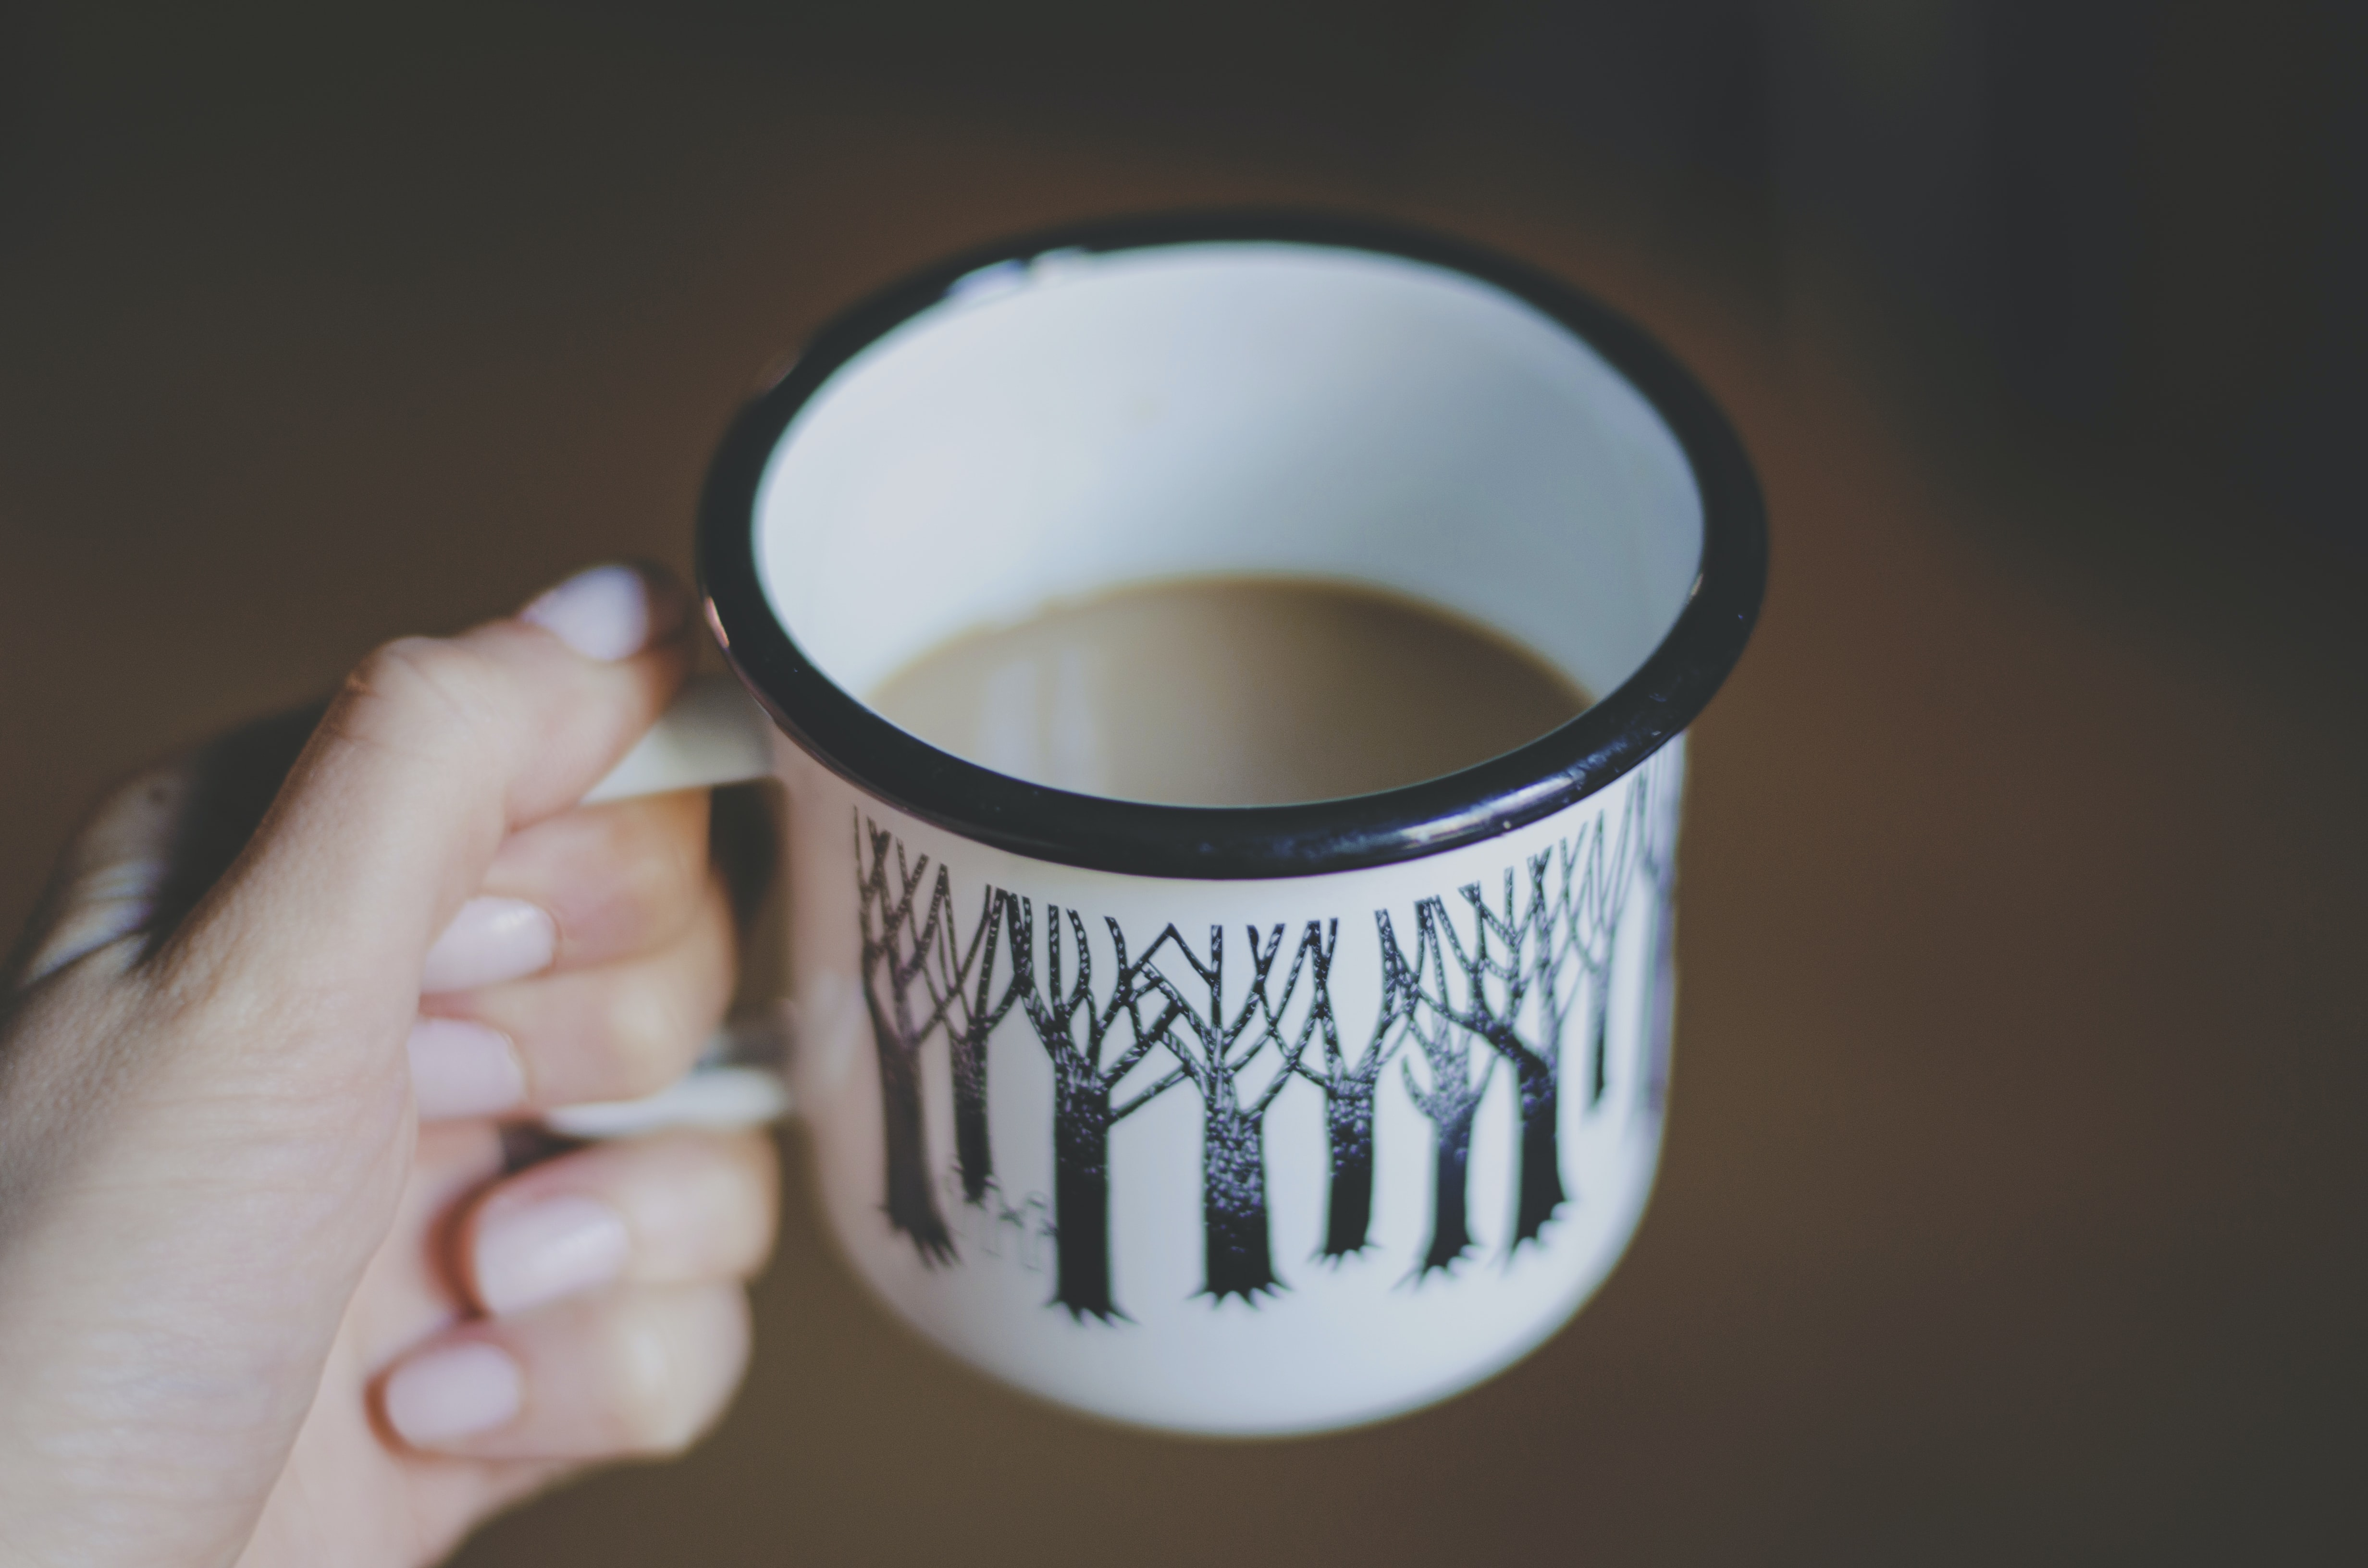 white and black ceramic mug filled with coffee